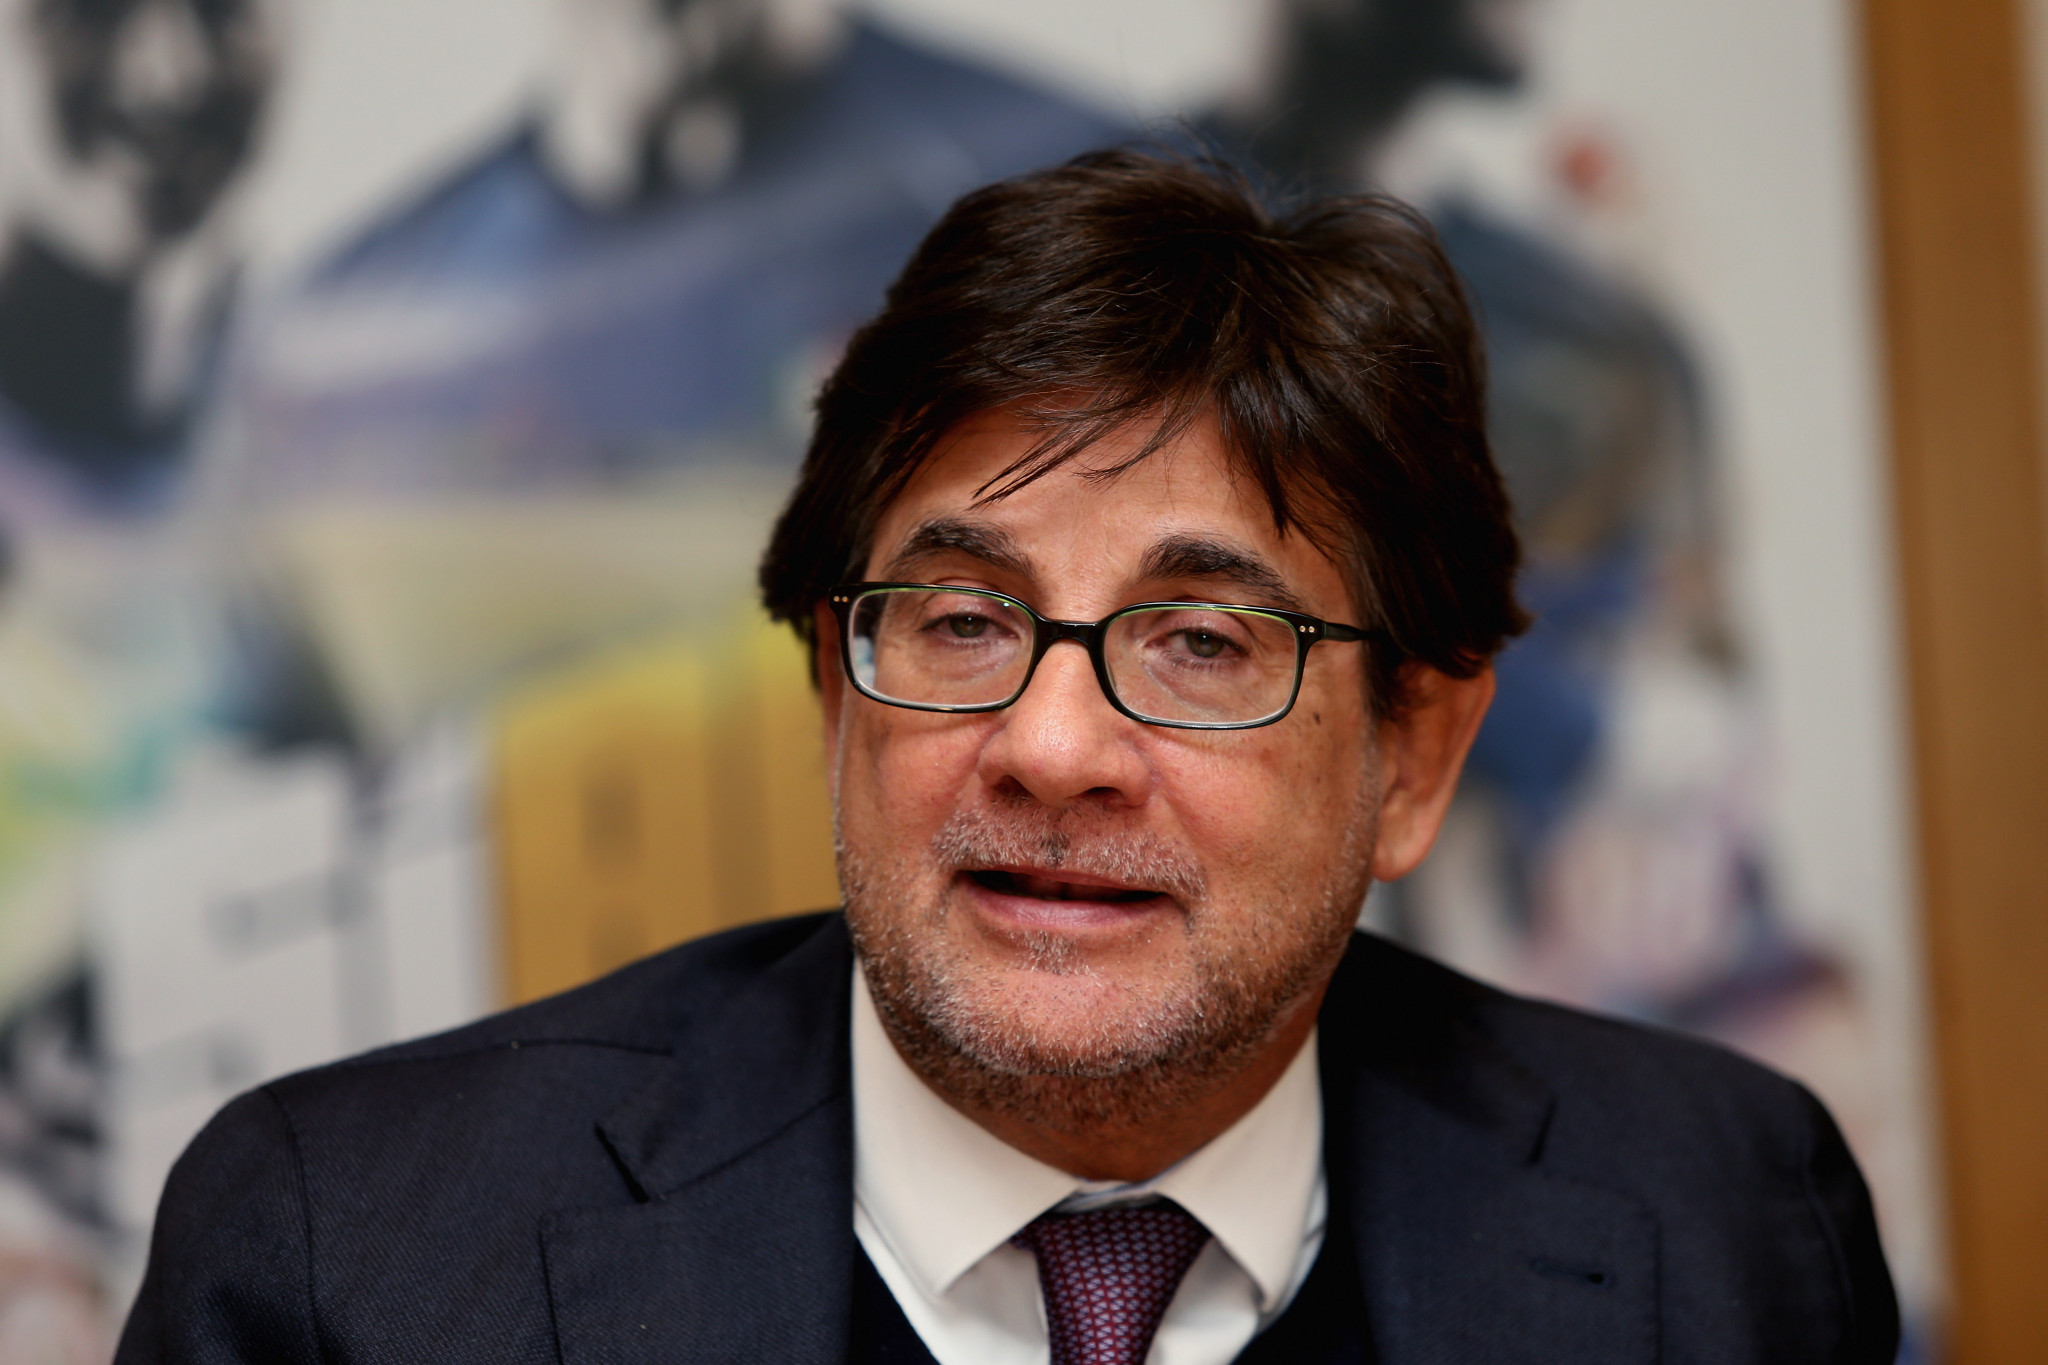 Pancalli re-elected Italian Paralympic Committee President